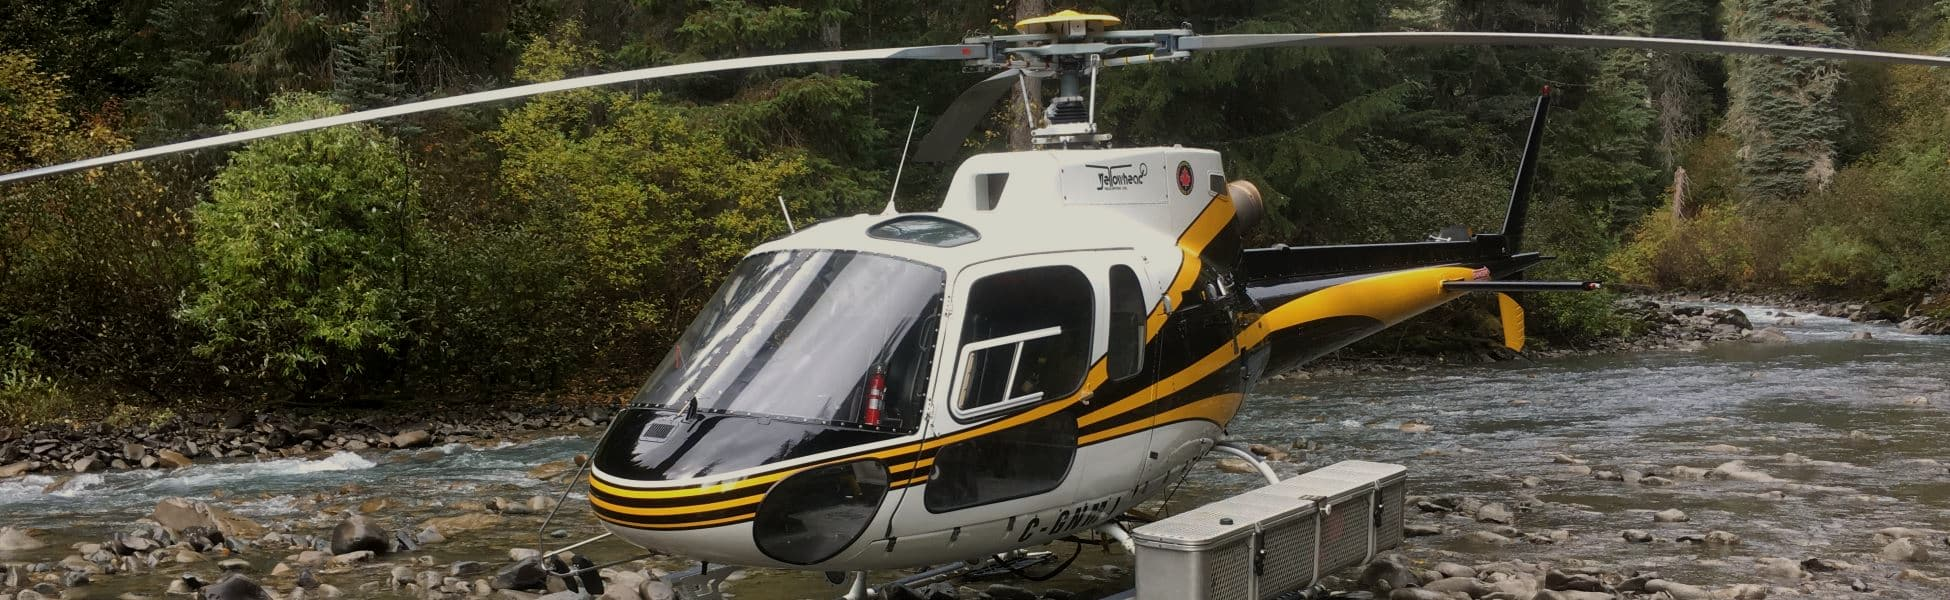 helicopter charter services environmental survey